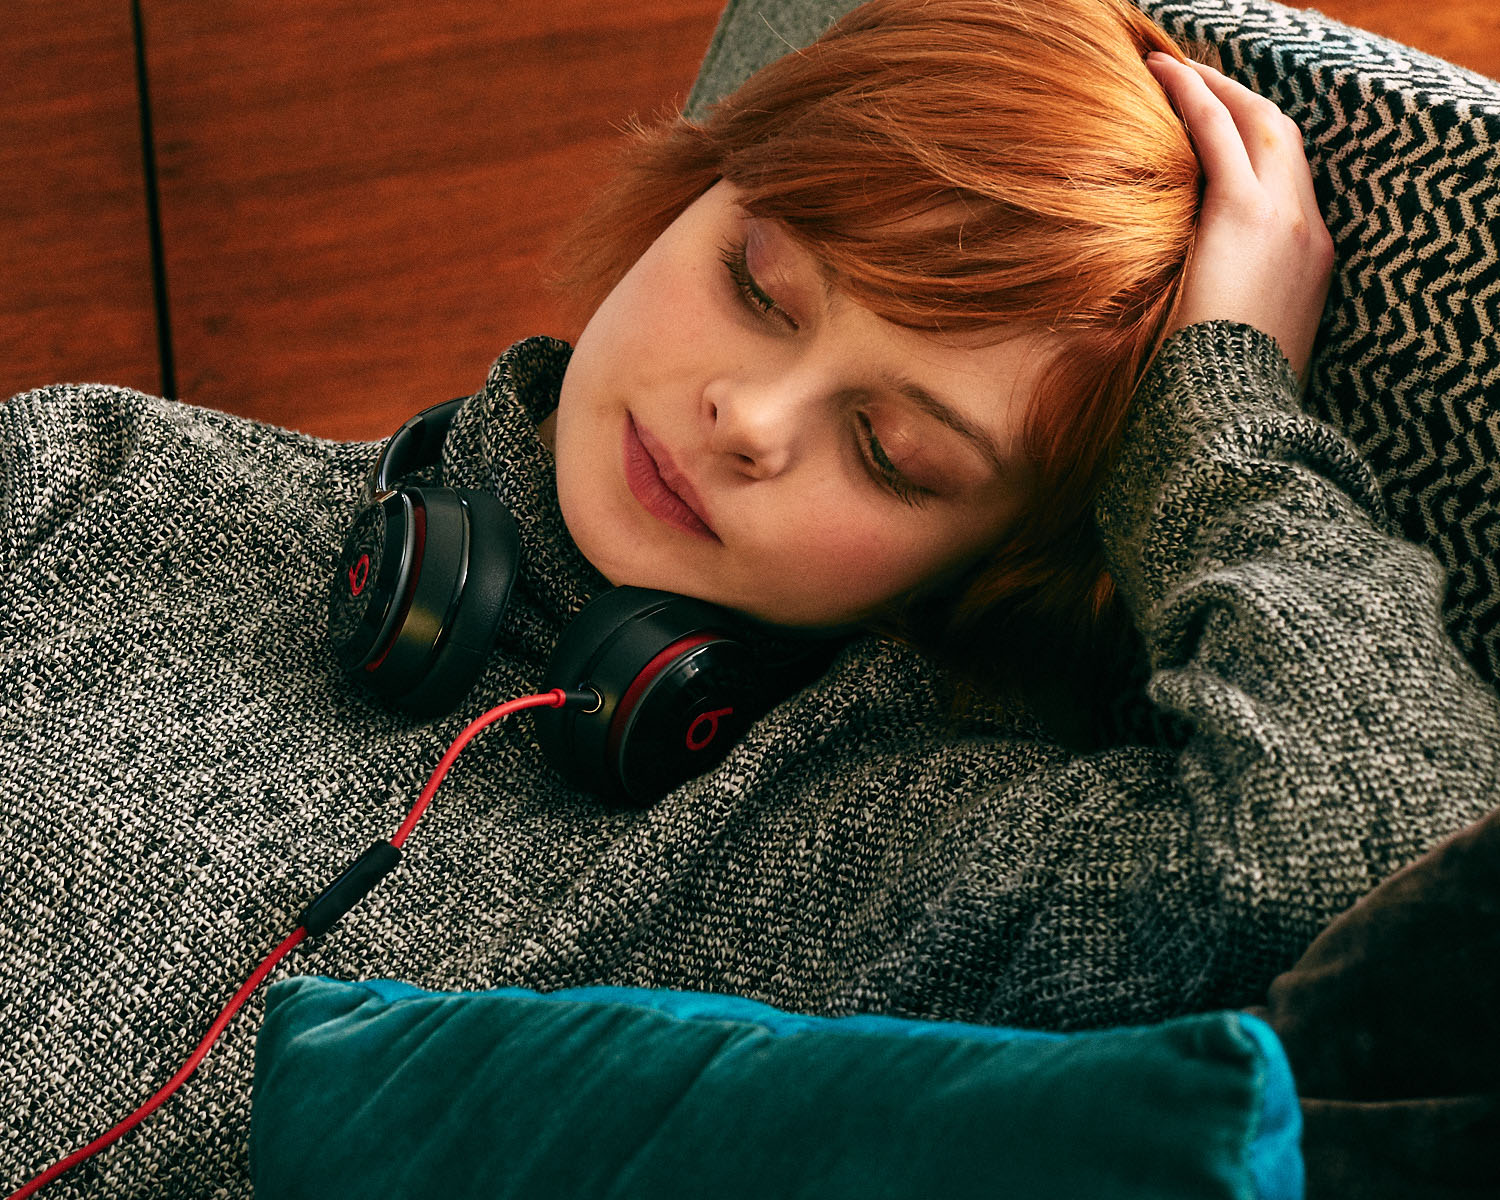 On sofa, 'Beats by Dre'  by lifestyle photographer Tim Cole